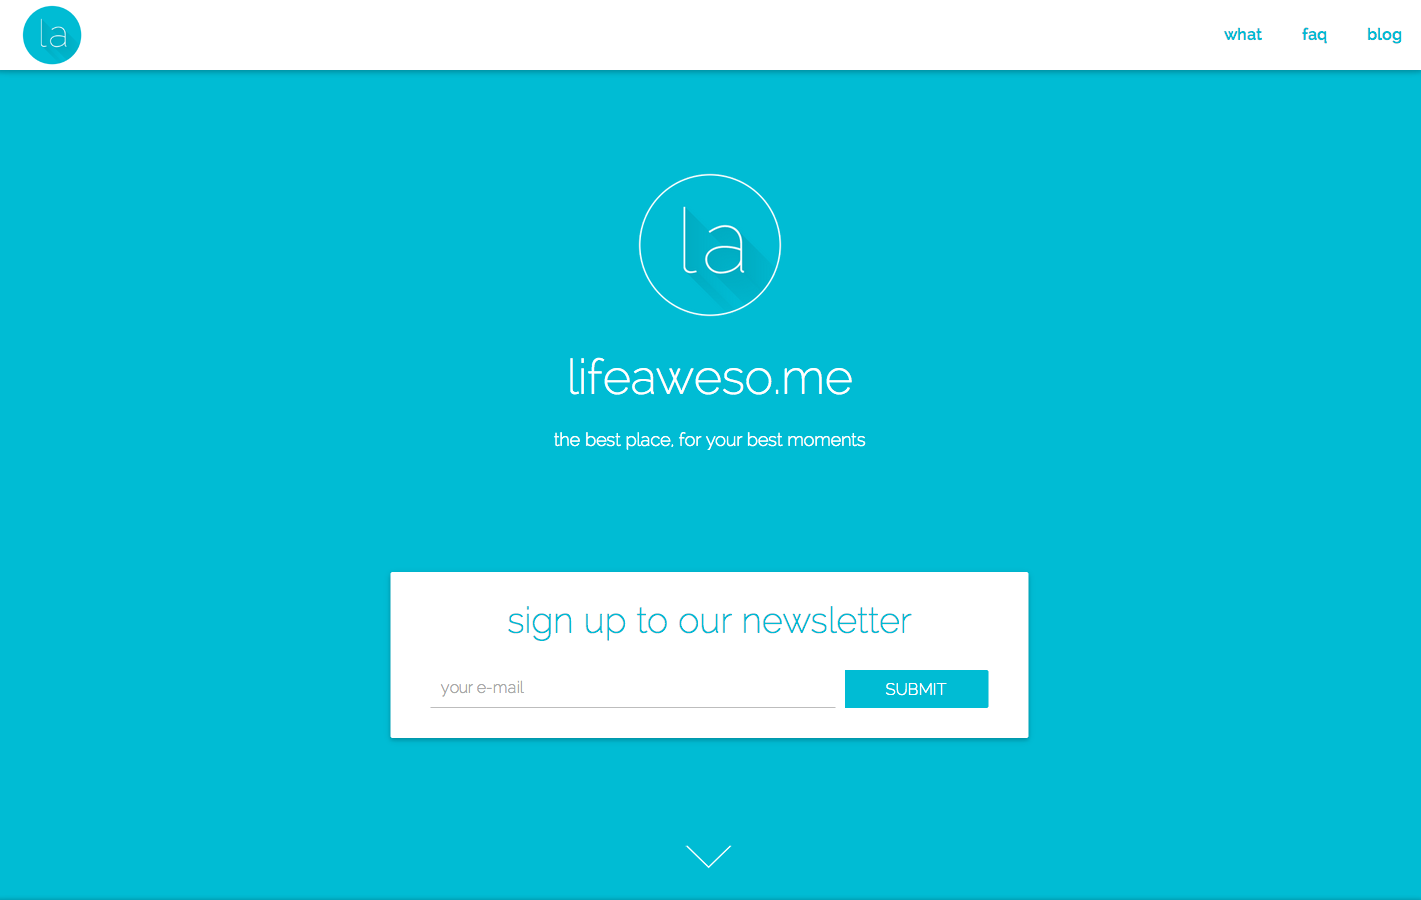 Awesome Css Designs - Lifeaweso me